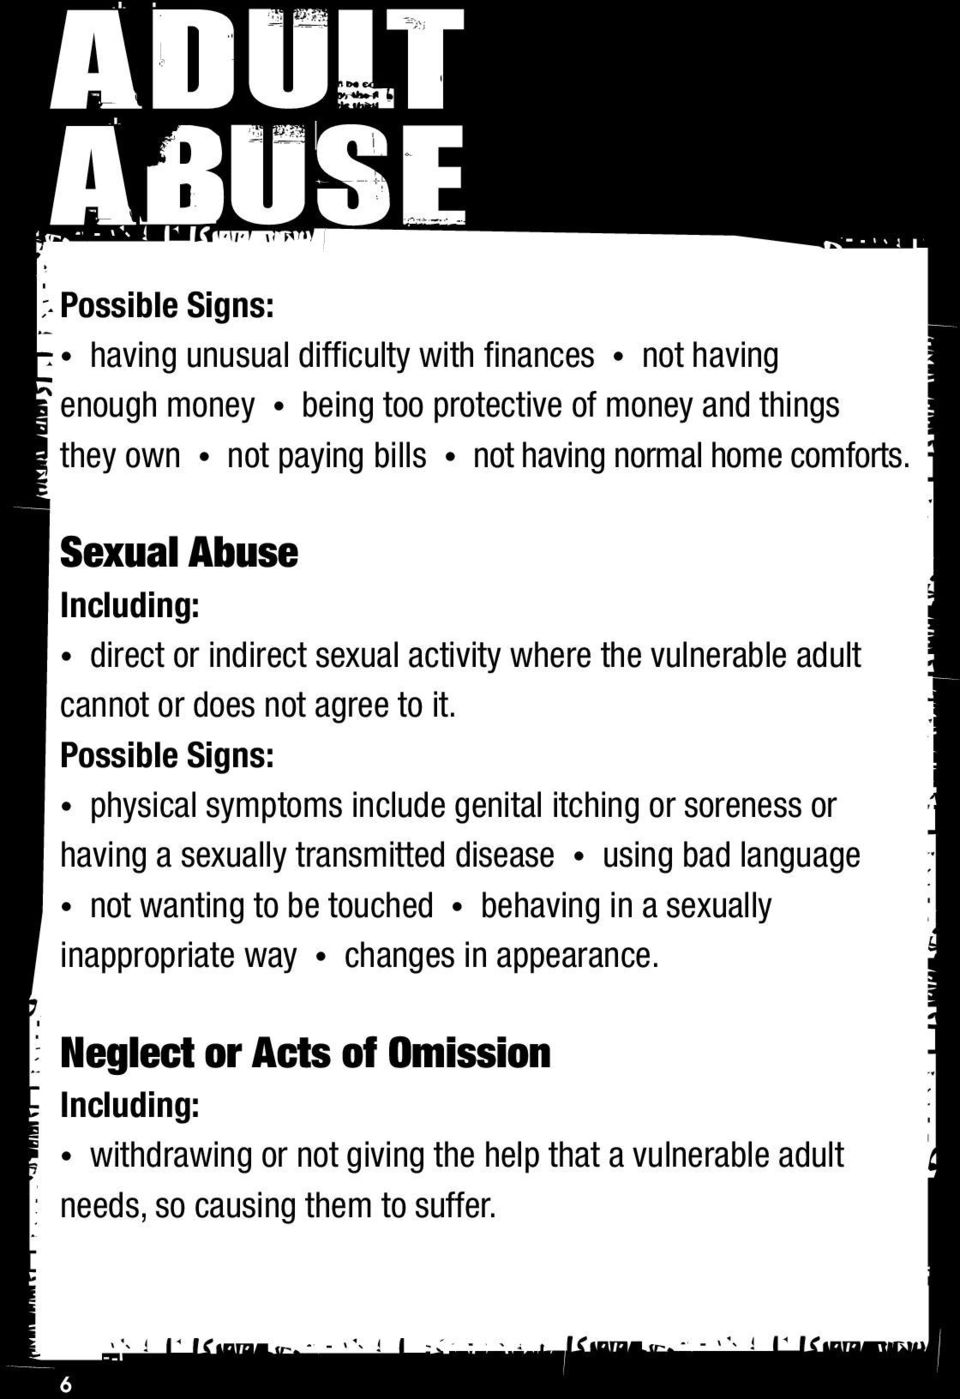 Possible Signs: physical symptoms include genital itching or soreness or having a sexually transmitted disease using bad language not wanting to be touched